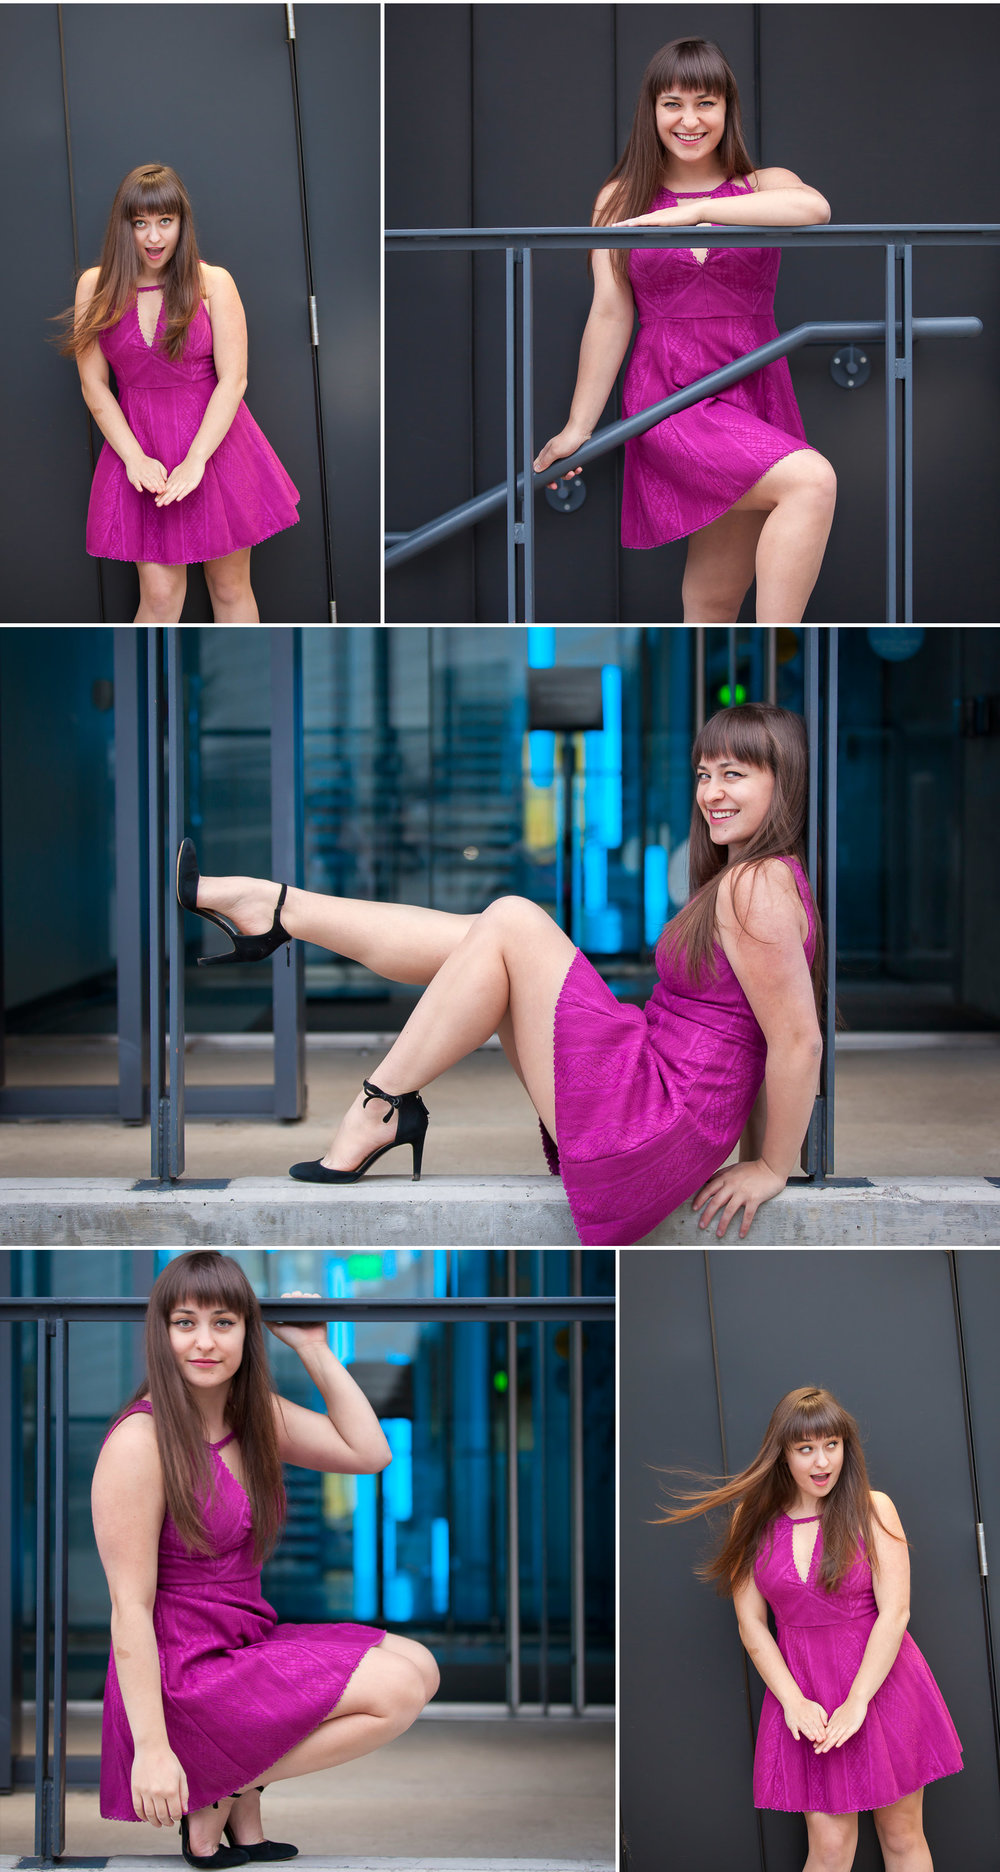 Fashion Inspired Urban Senior Portraits in the streets of Denver with photographer Jennifer Koskinen, Merritt Portrait Studio